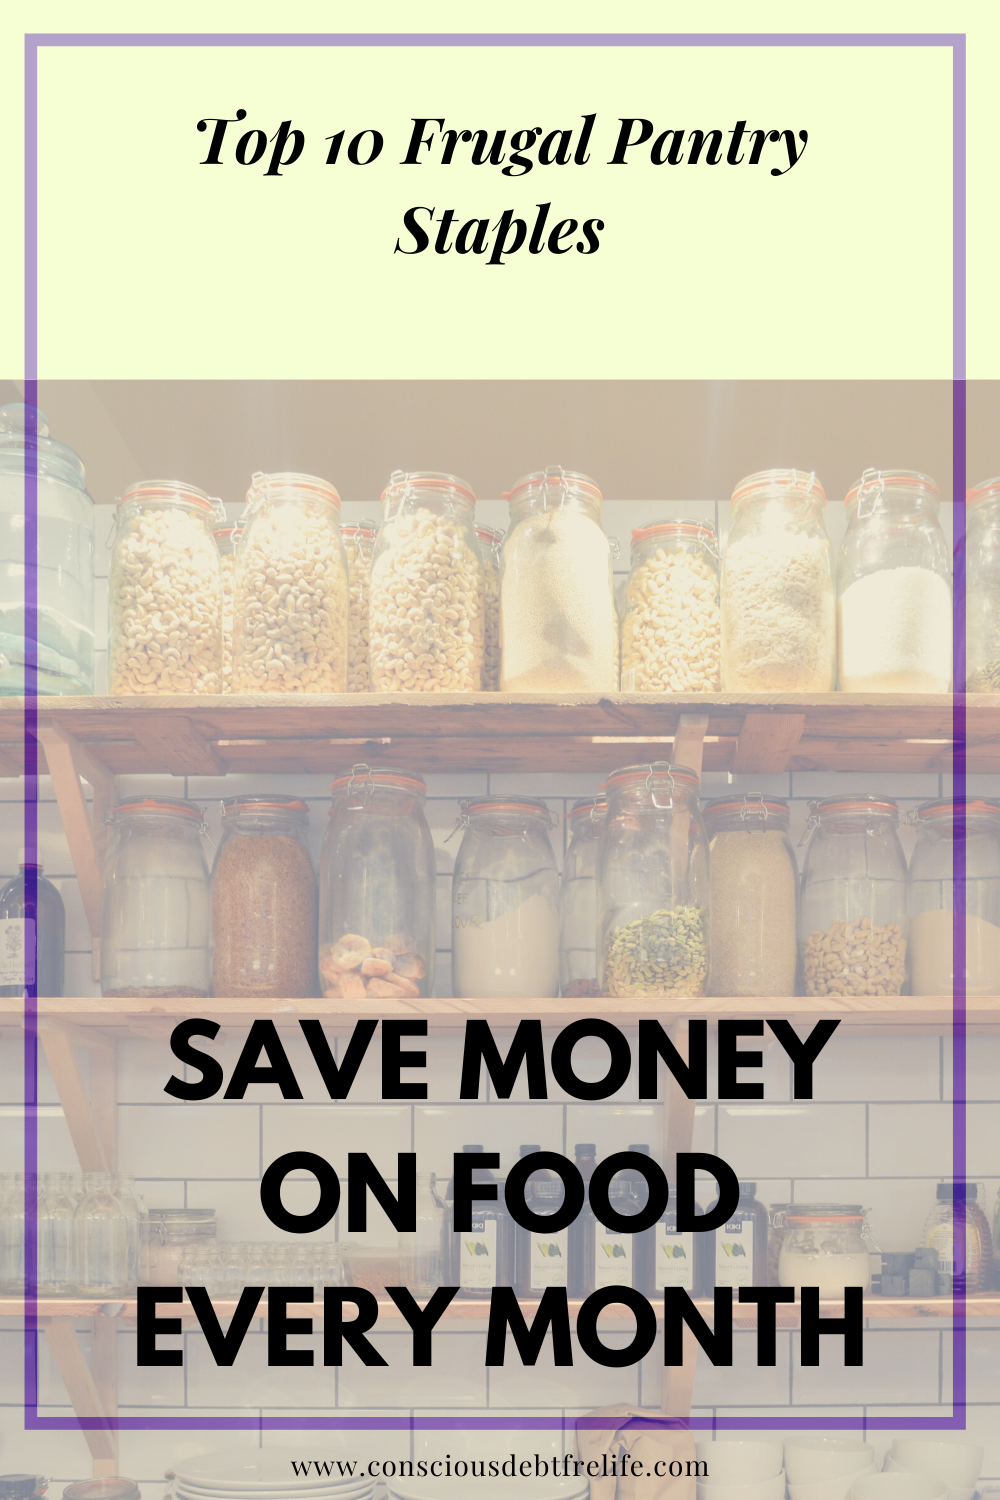 Top 10 Frugal Pantry Staples to save money on food every month